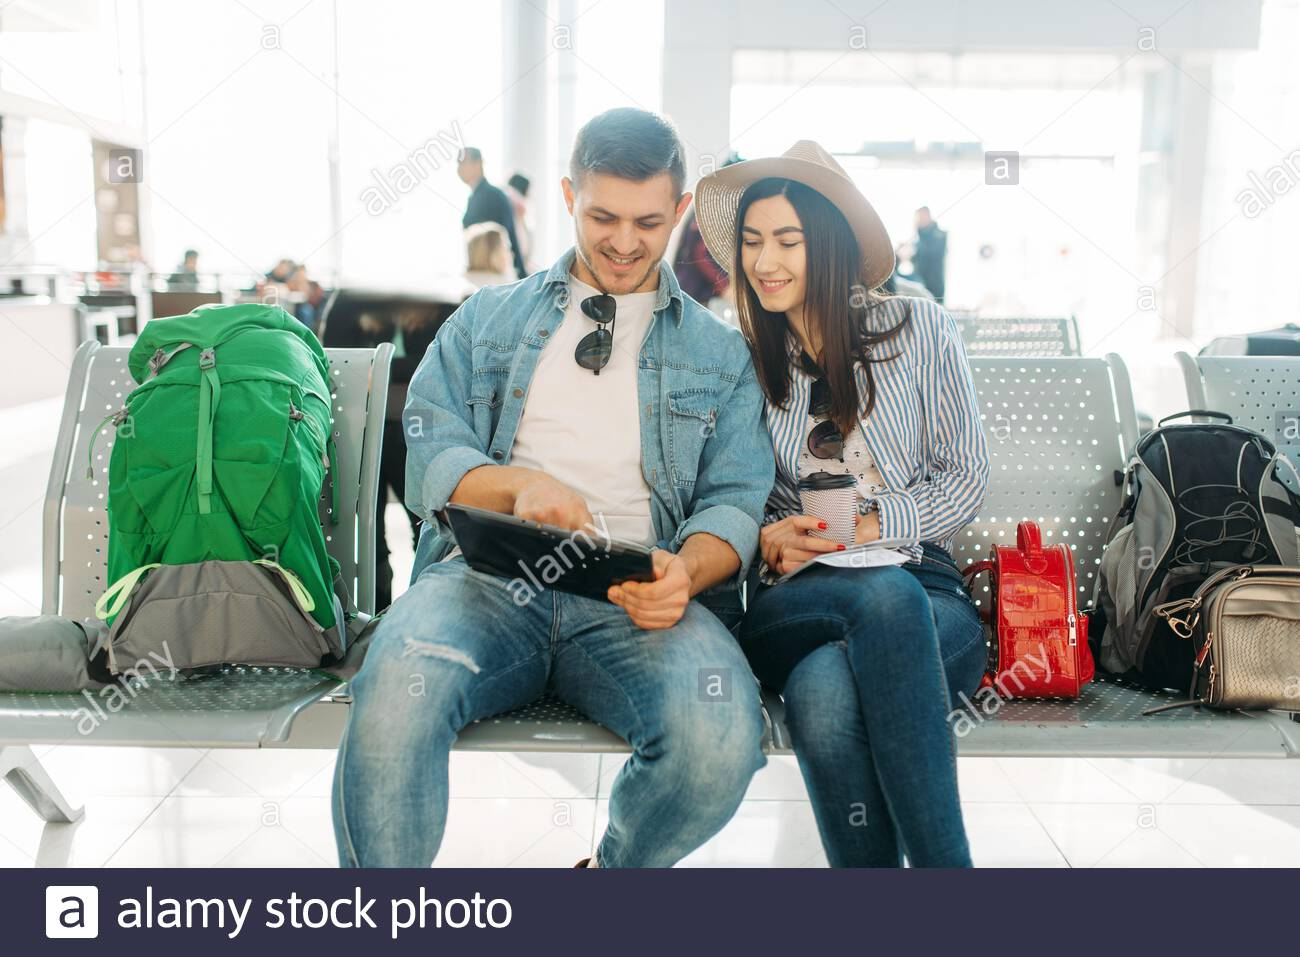 Love Couple With Luggage Waiting For Departure In Airport Passengers With Baggage In Air Terminal Happy Journey Summer Travel Stock Photo Alamy